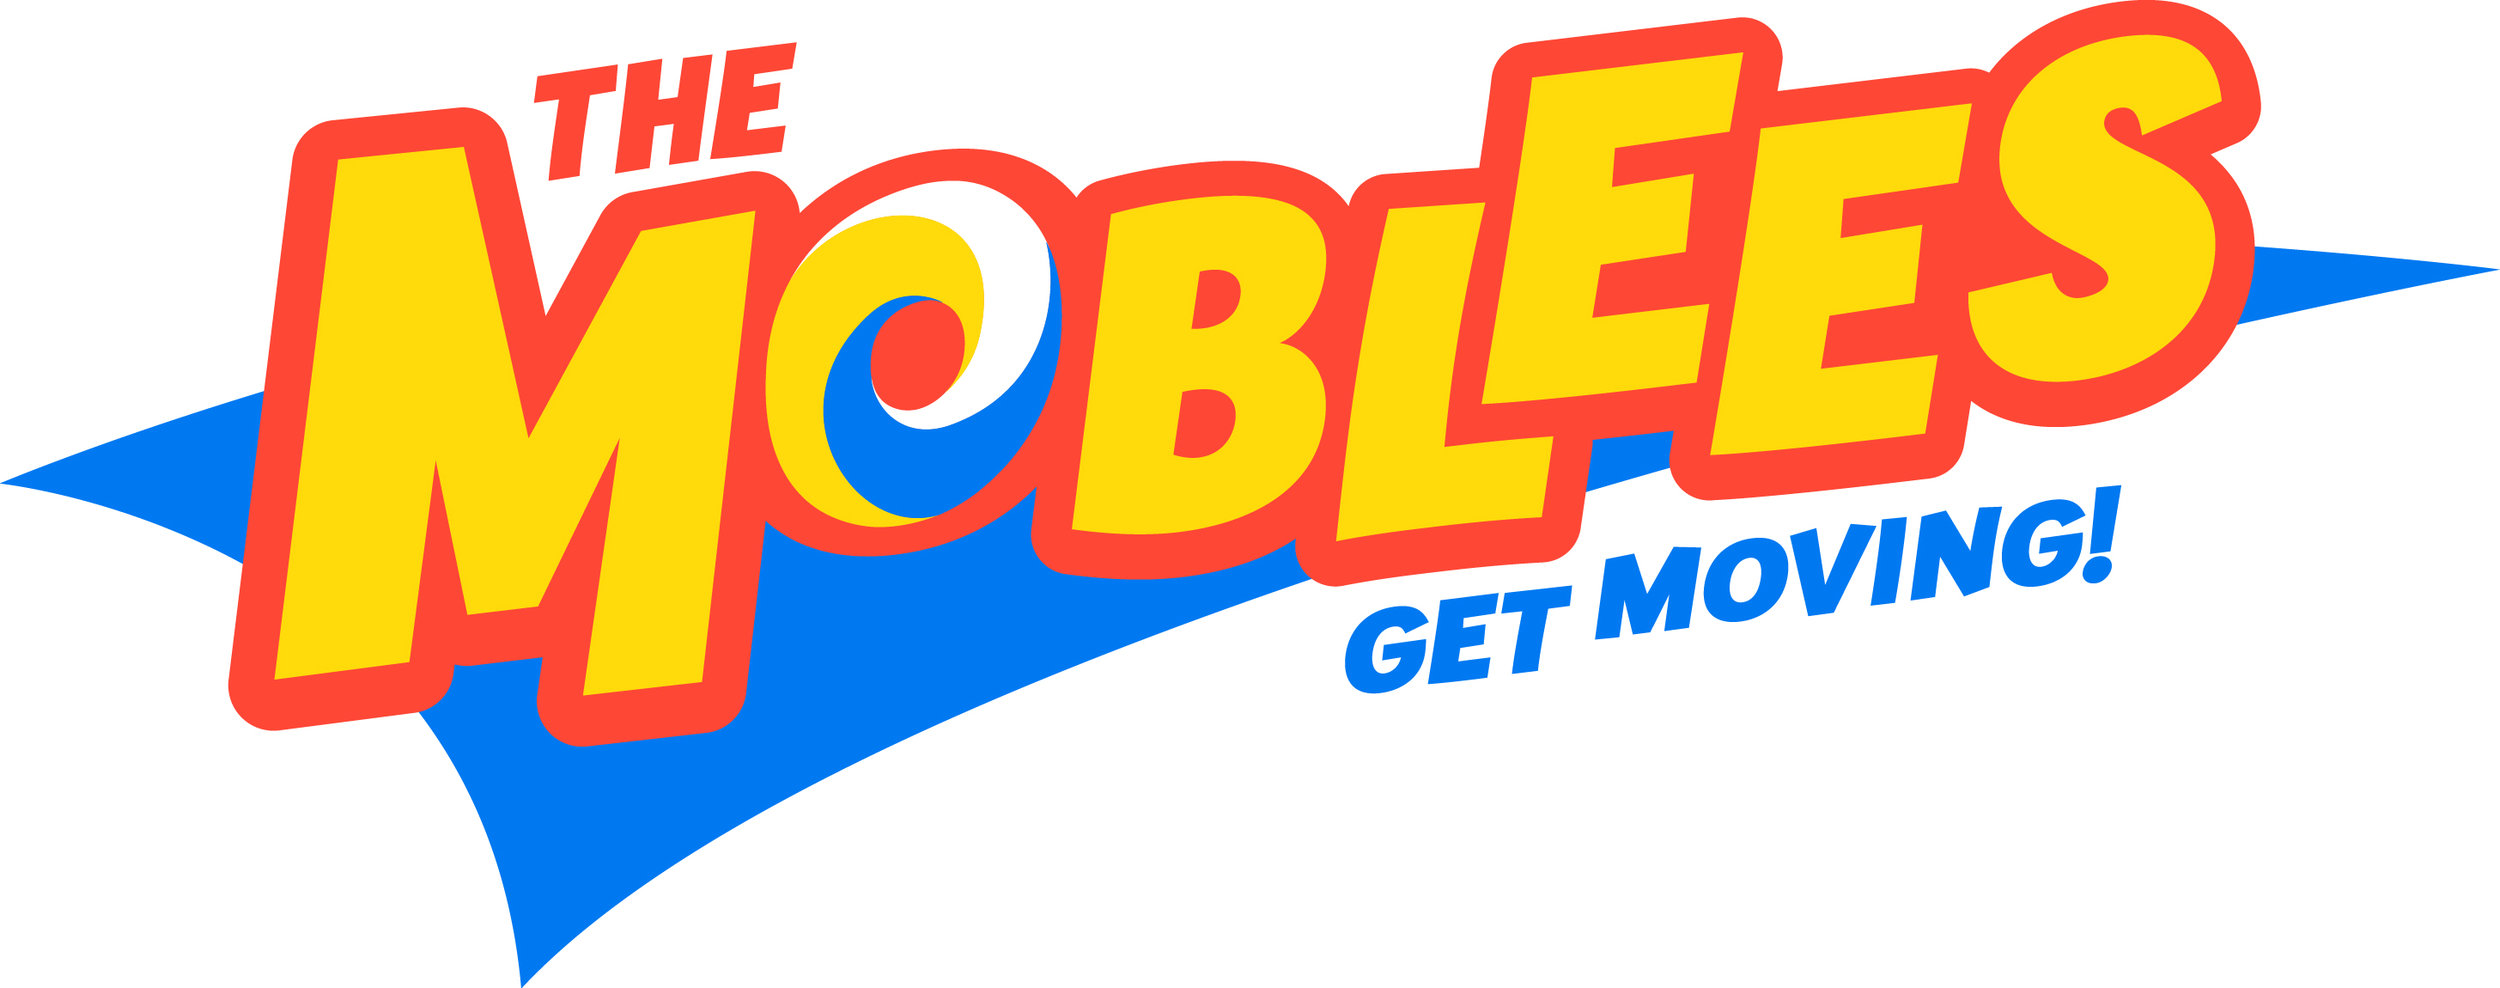 Moblees Logo Final RGB.JPG